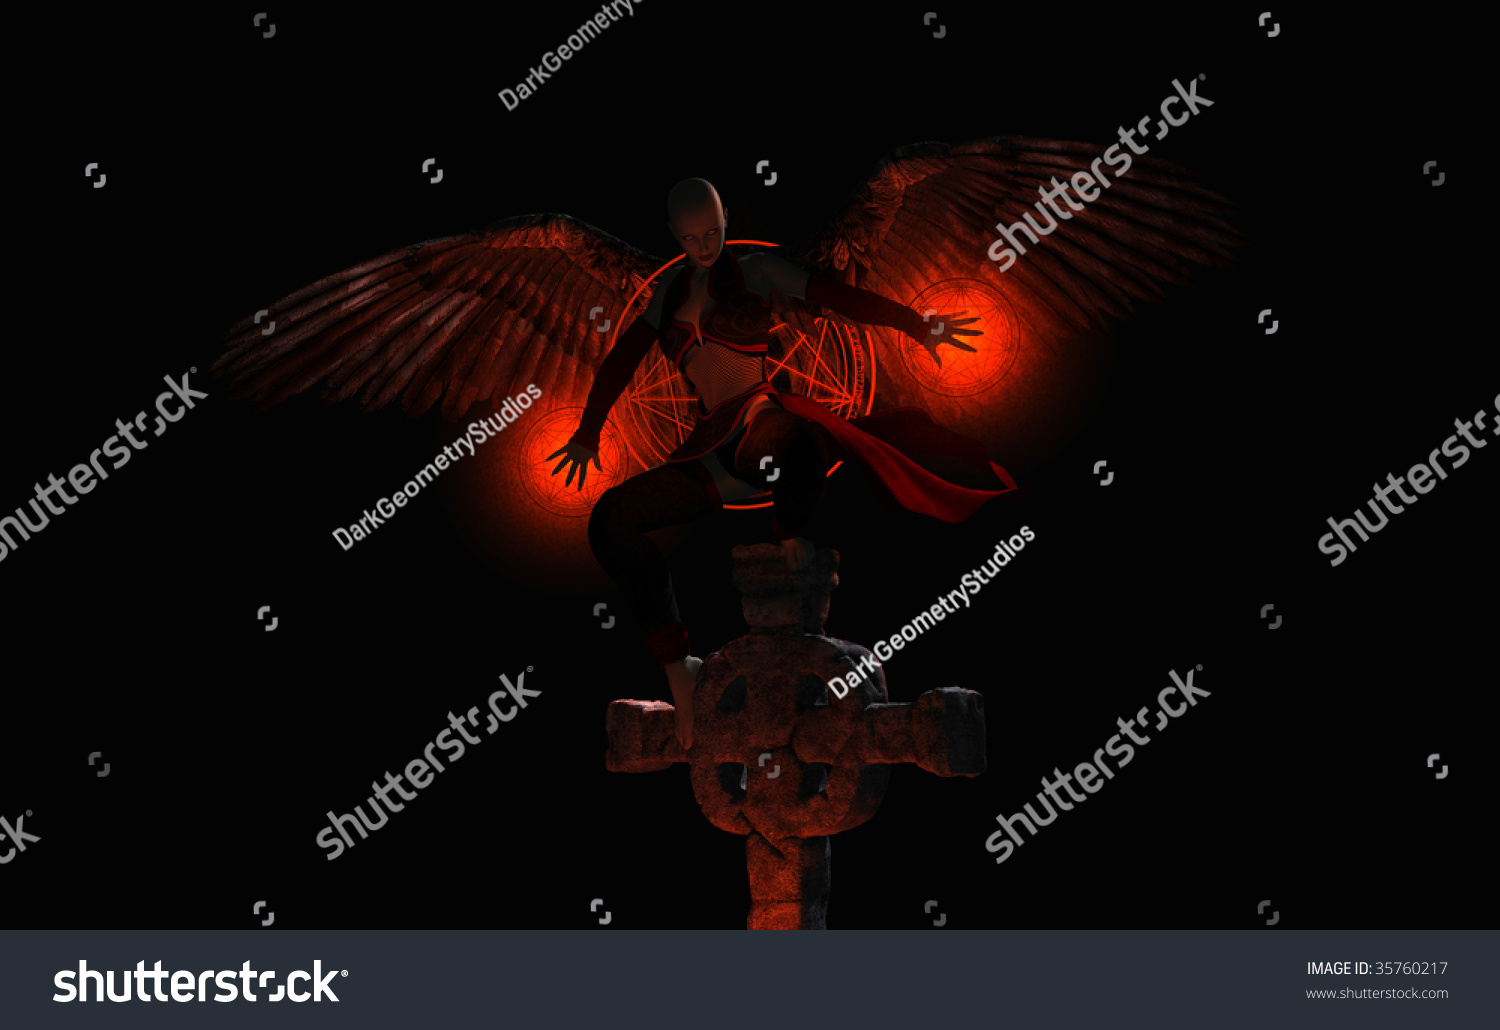 fallen angels character essay editorials most all smart he was very smart dreamer sexist perceptions  society tests transcript fallen angels walter dean myers